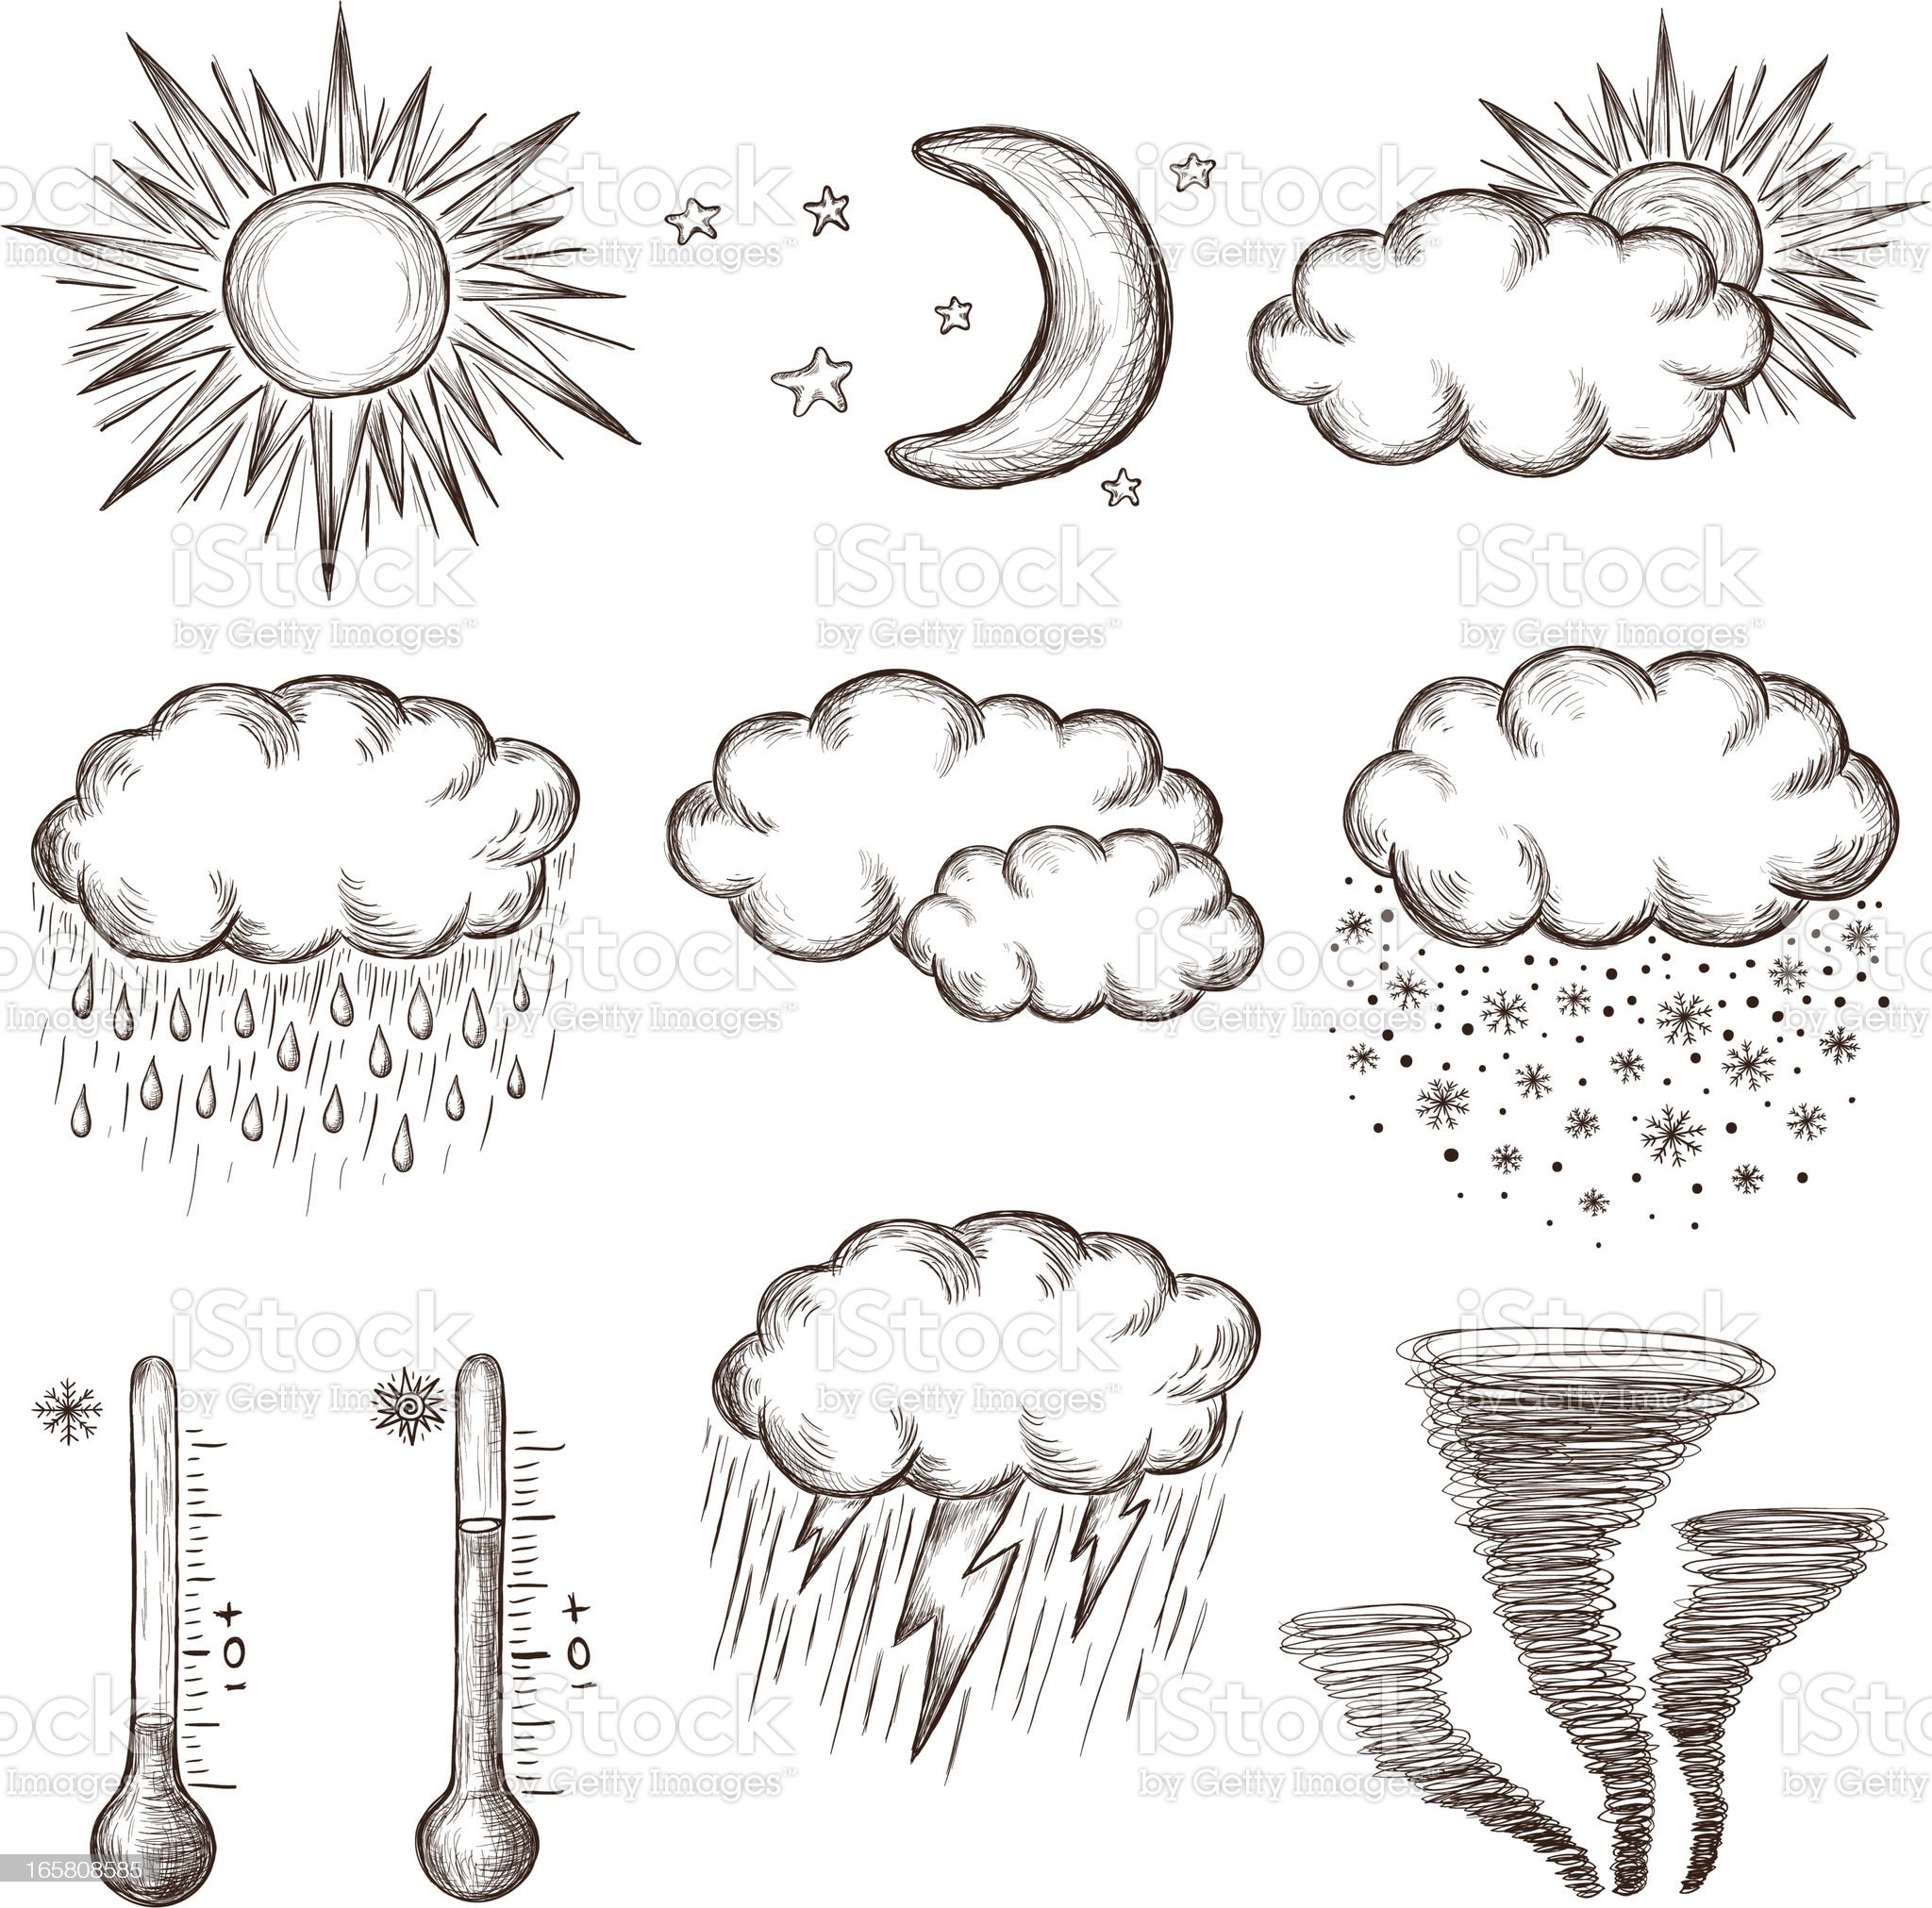 Hand drawn weather icons. royalty-free stock vector art